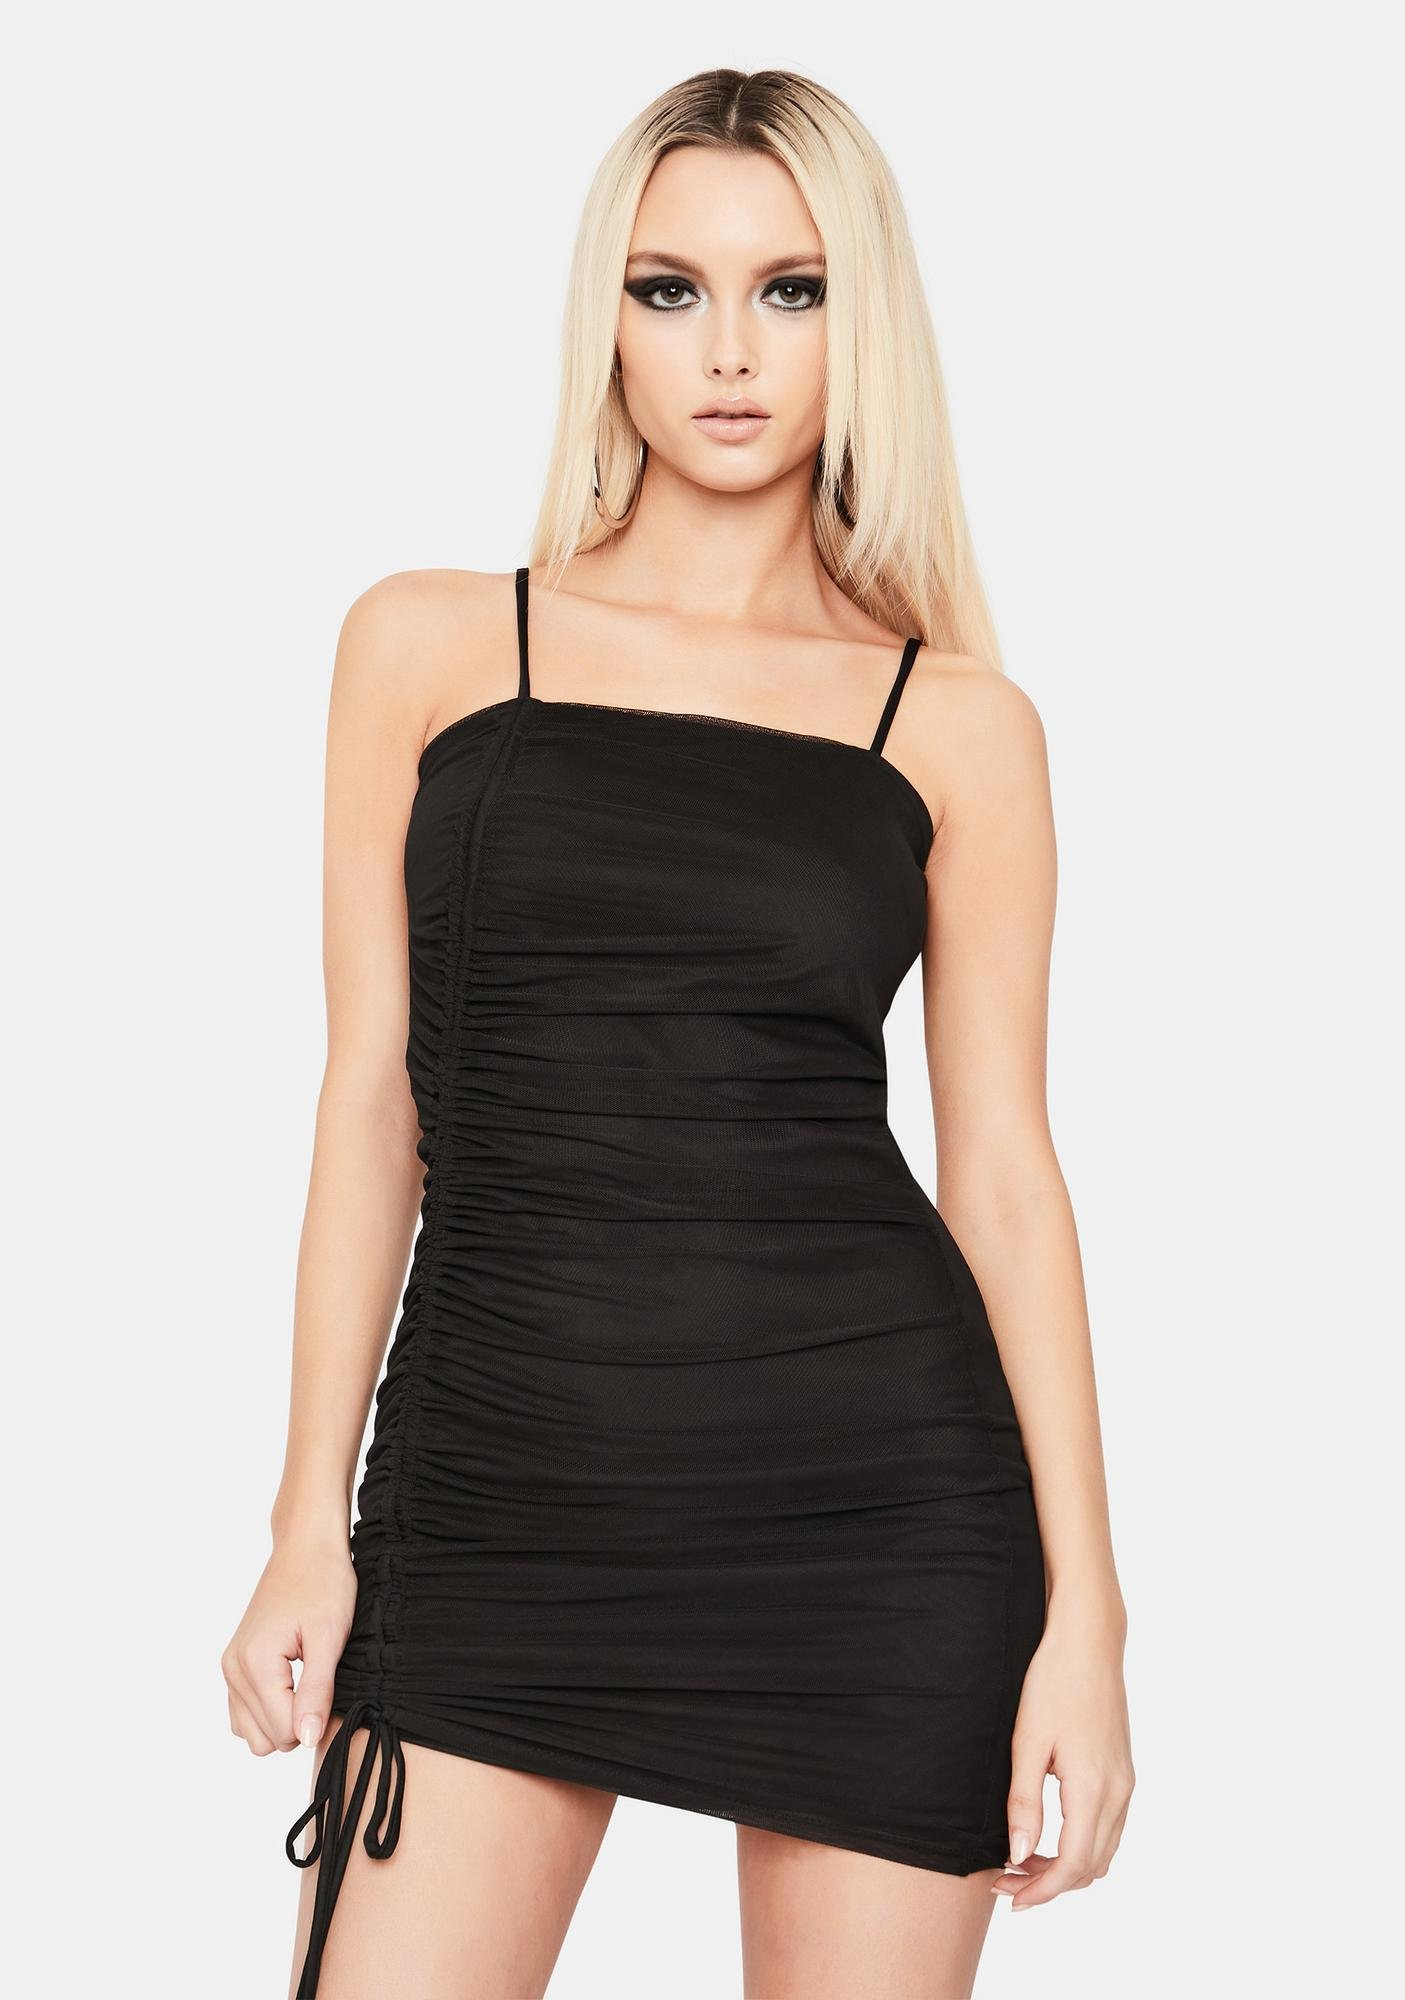 More Than Life Ruched Bodycon Dress